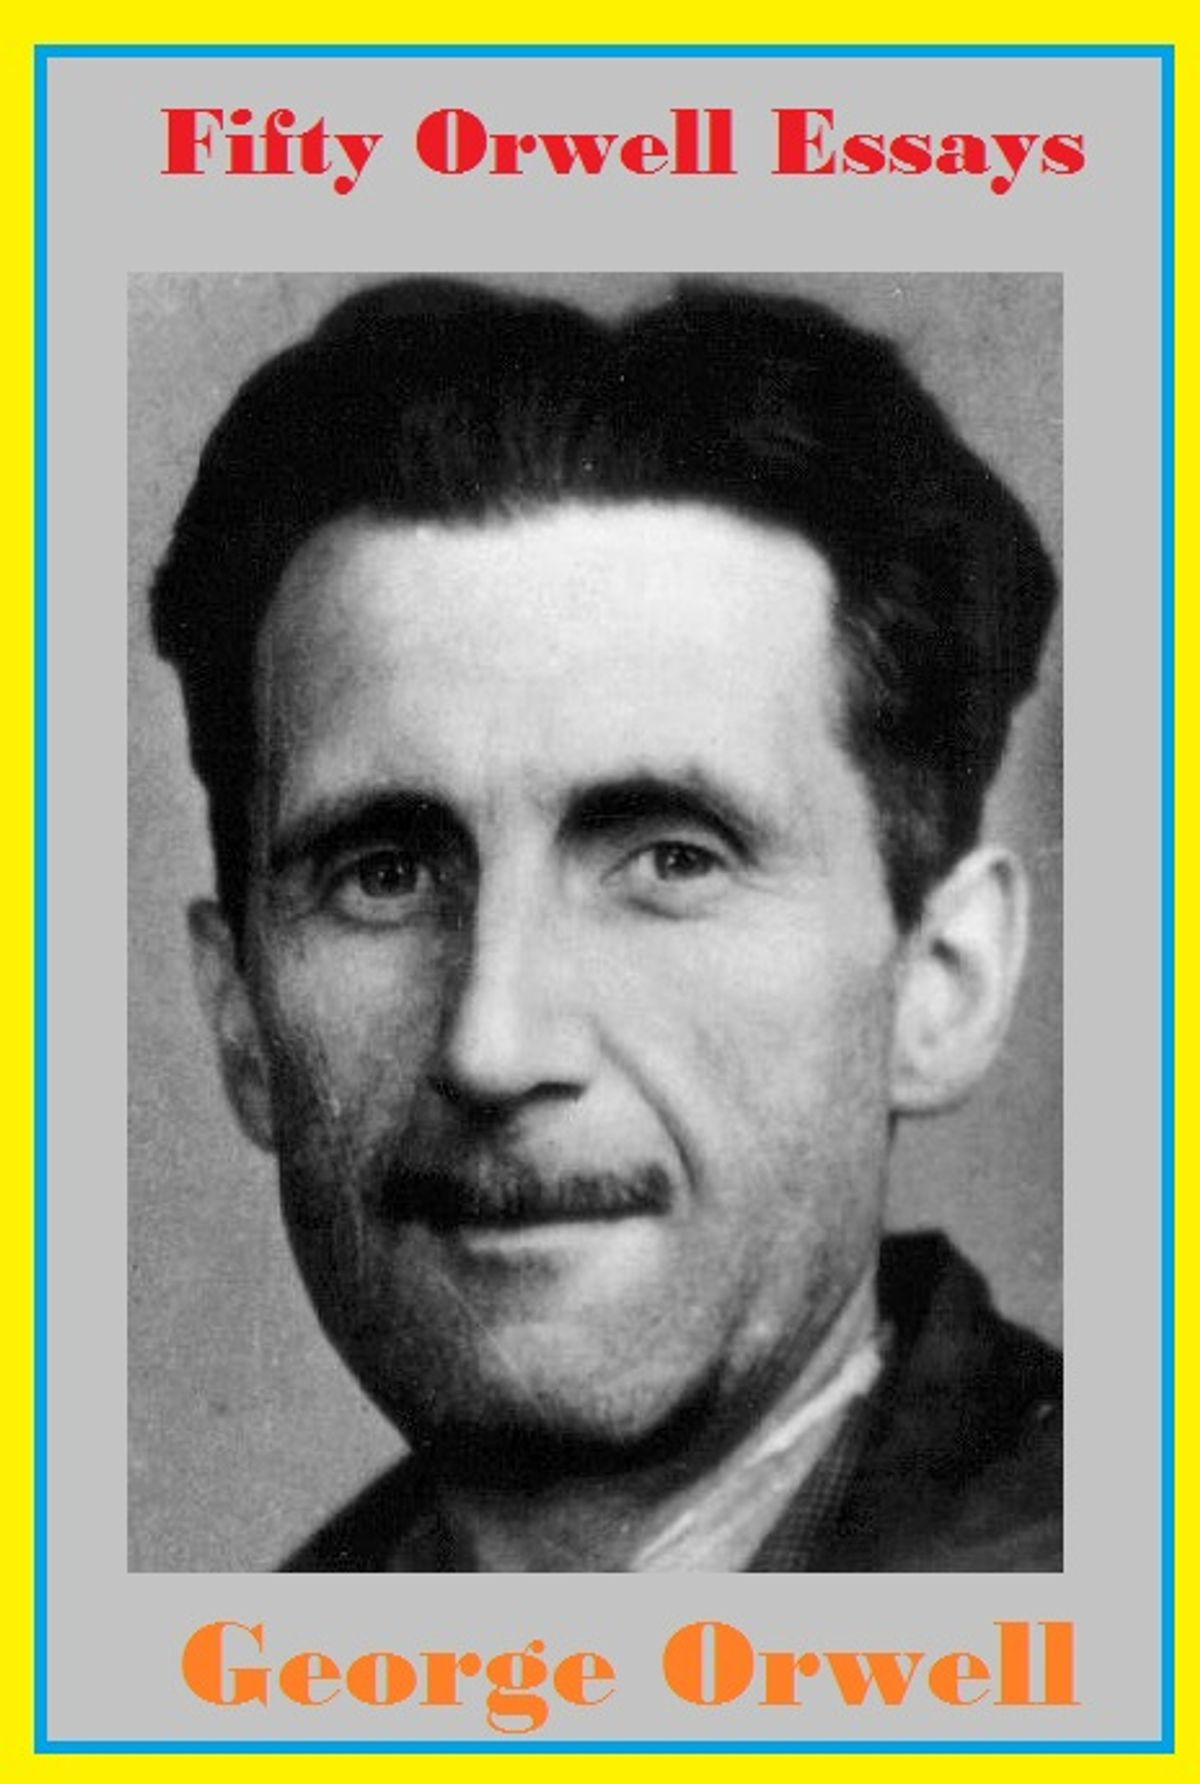 007 Essay Example Fifty Orwell Essays Frightening George 1984 Summary Collected Pdf On Writing Full